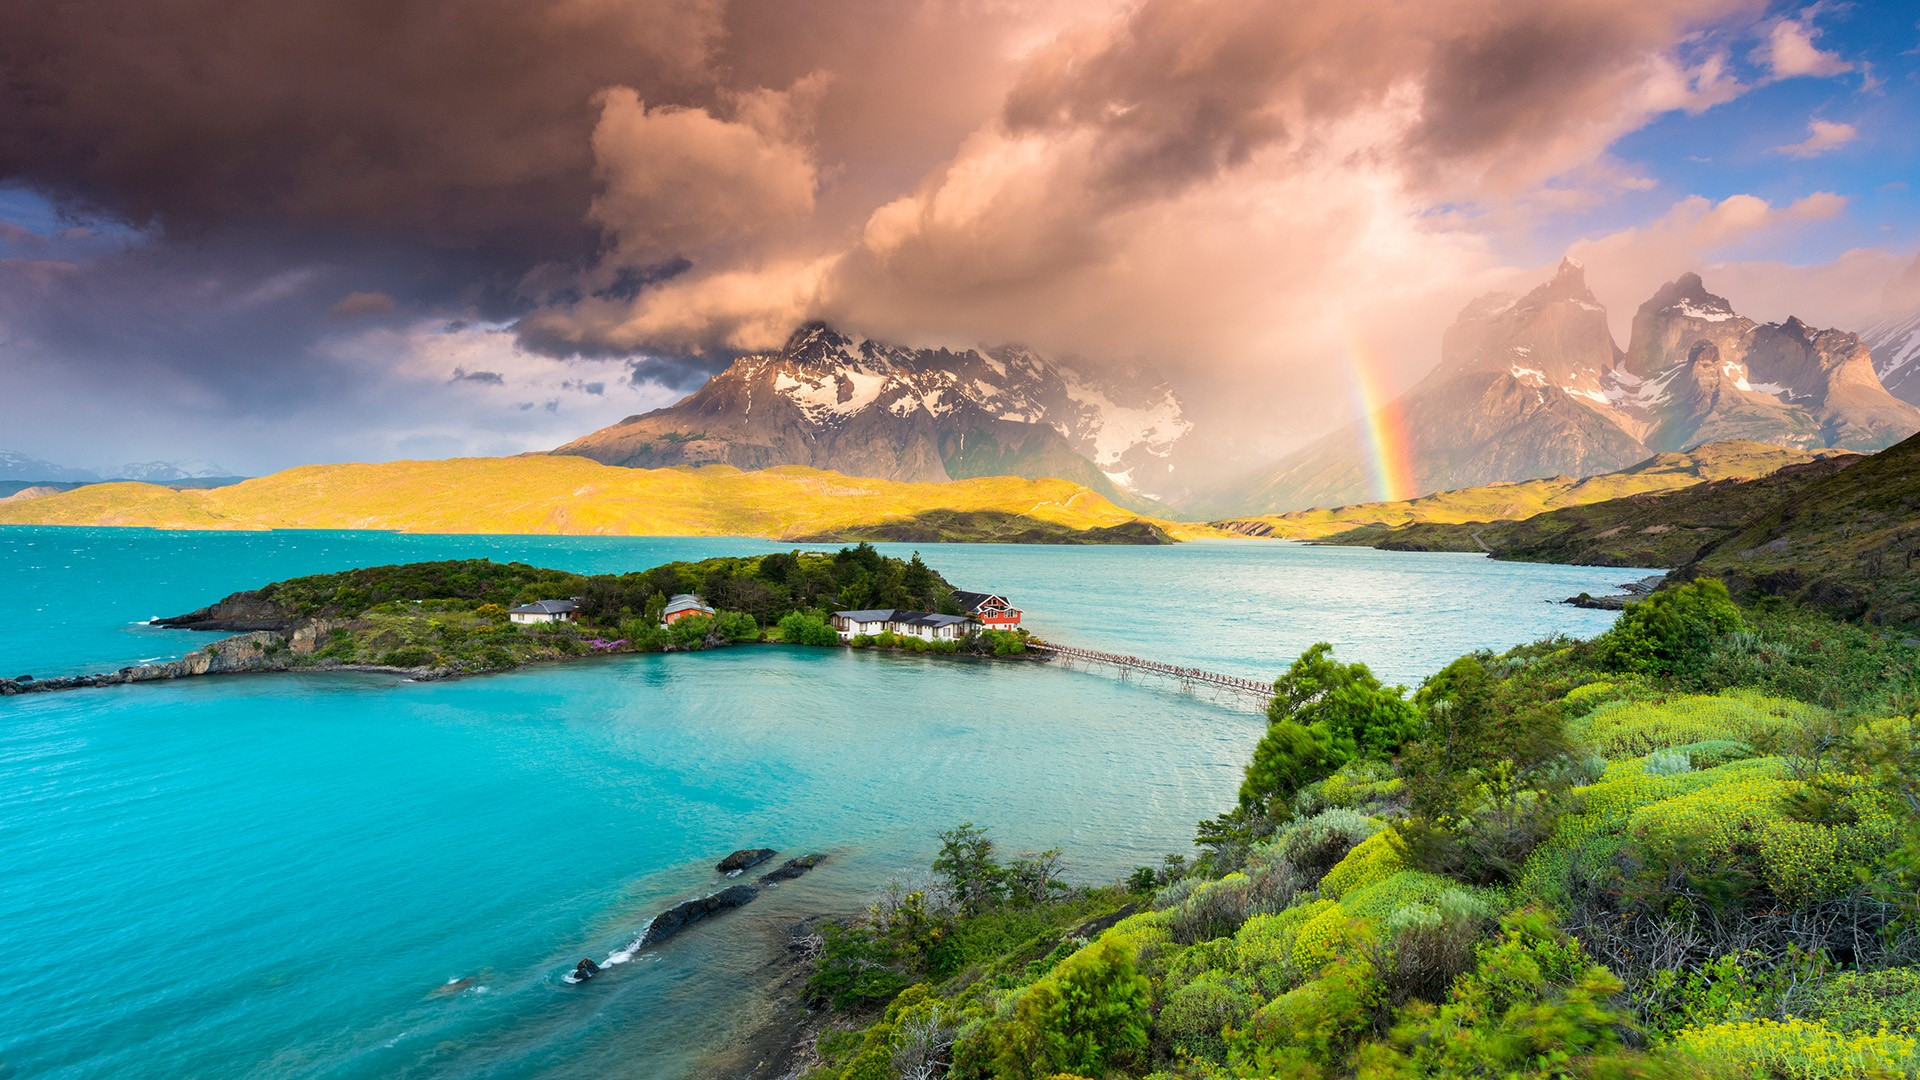 View over lake Pehoe and the Torres del Paine, Patagonia, Chile